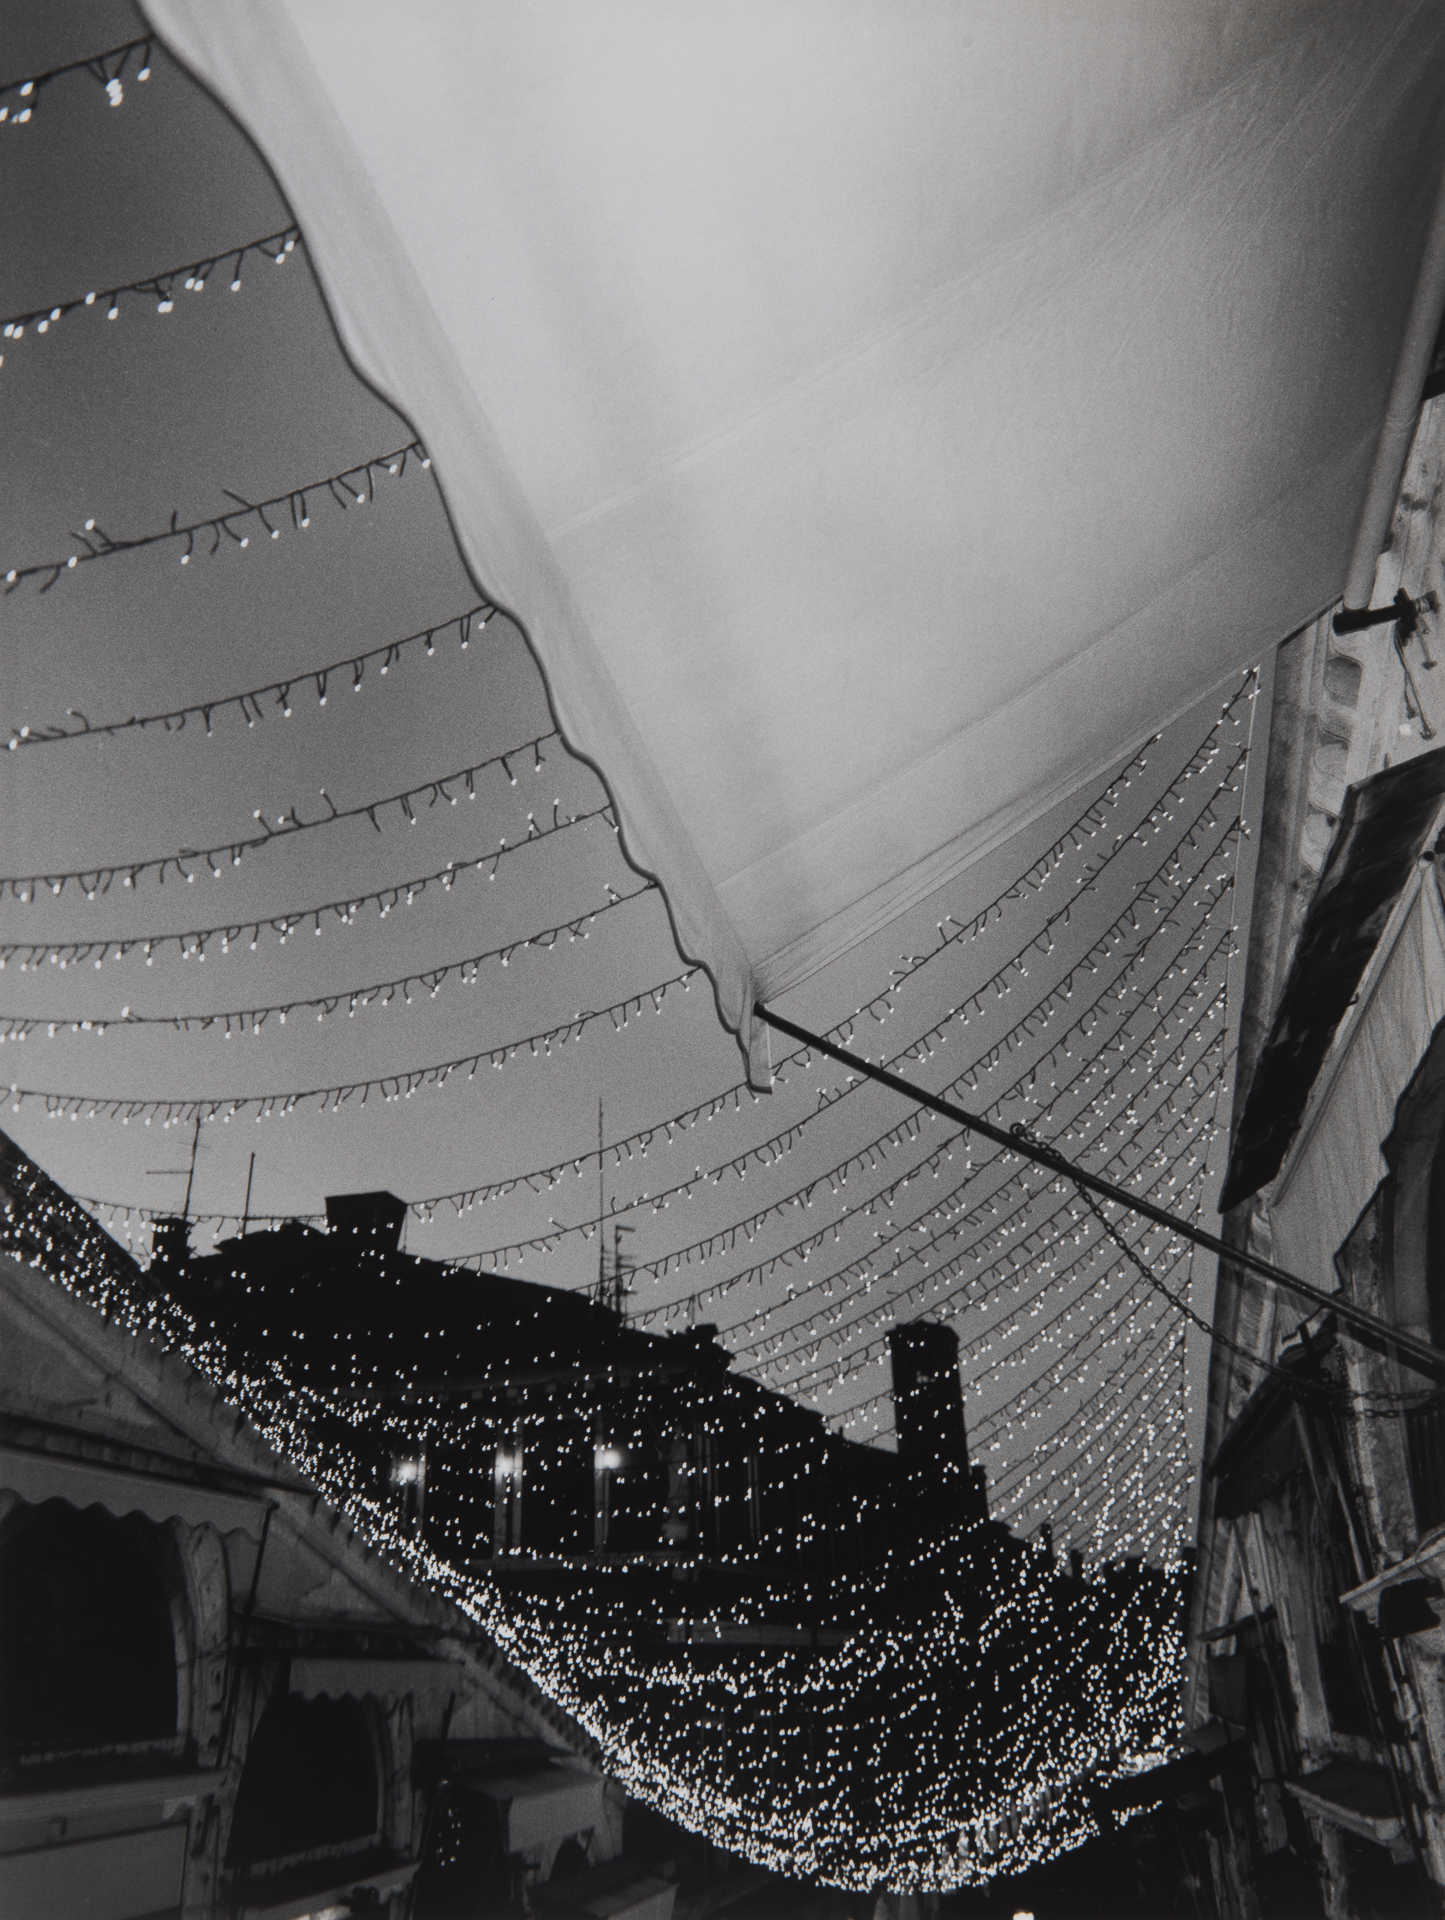 Awnings and Lights, Rialto Bridge - Venice, Italy